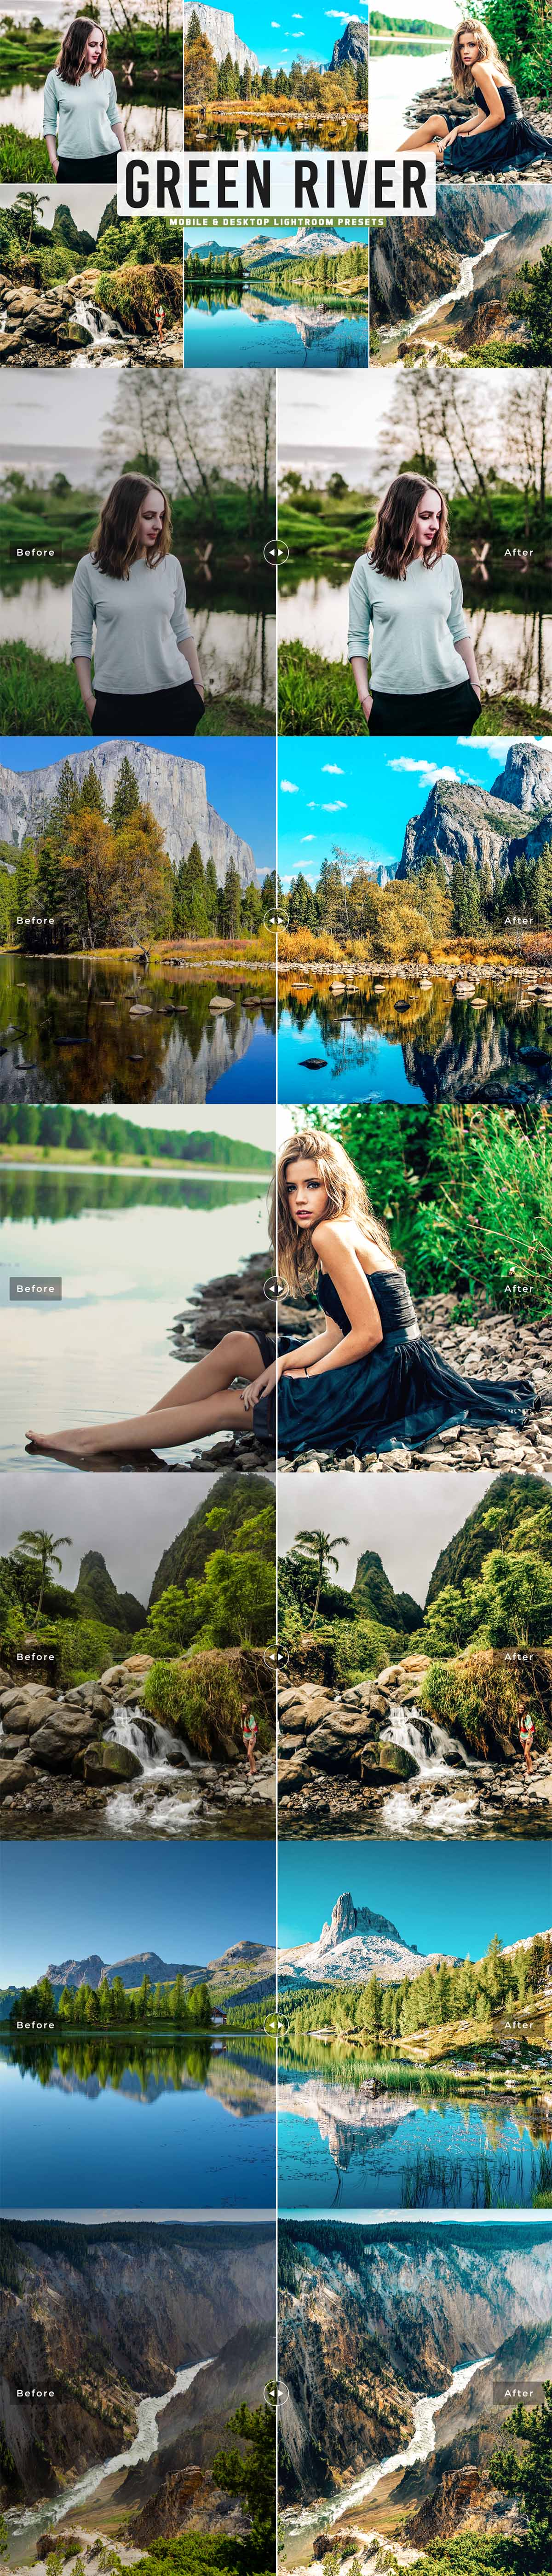 Free Green River Lightroom Presets